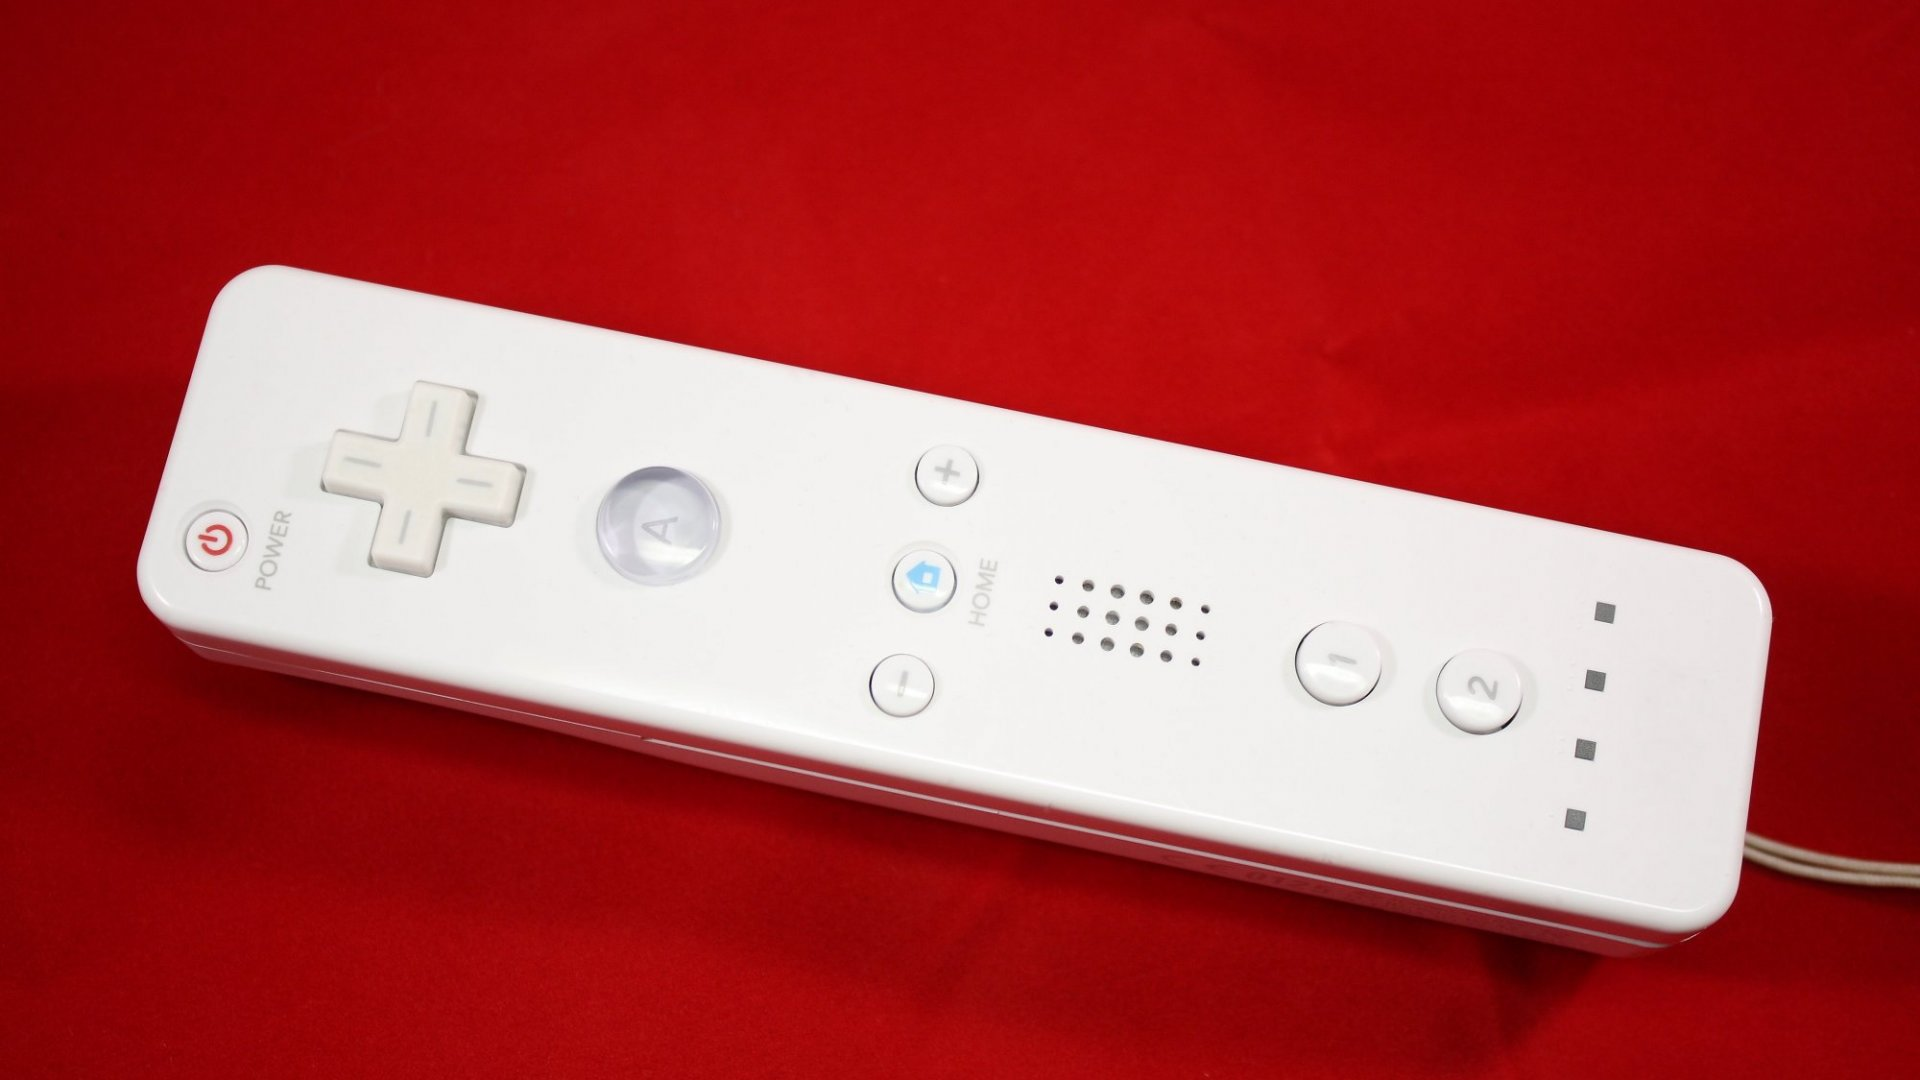 First Look at Nintendo's New Games Console: the Nintendo Switch